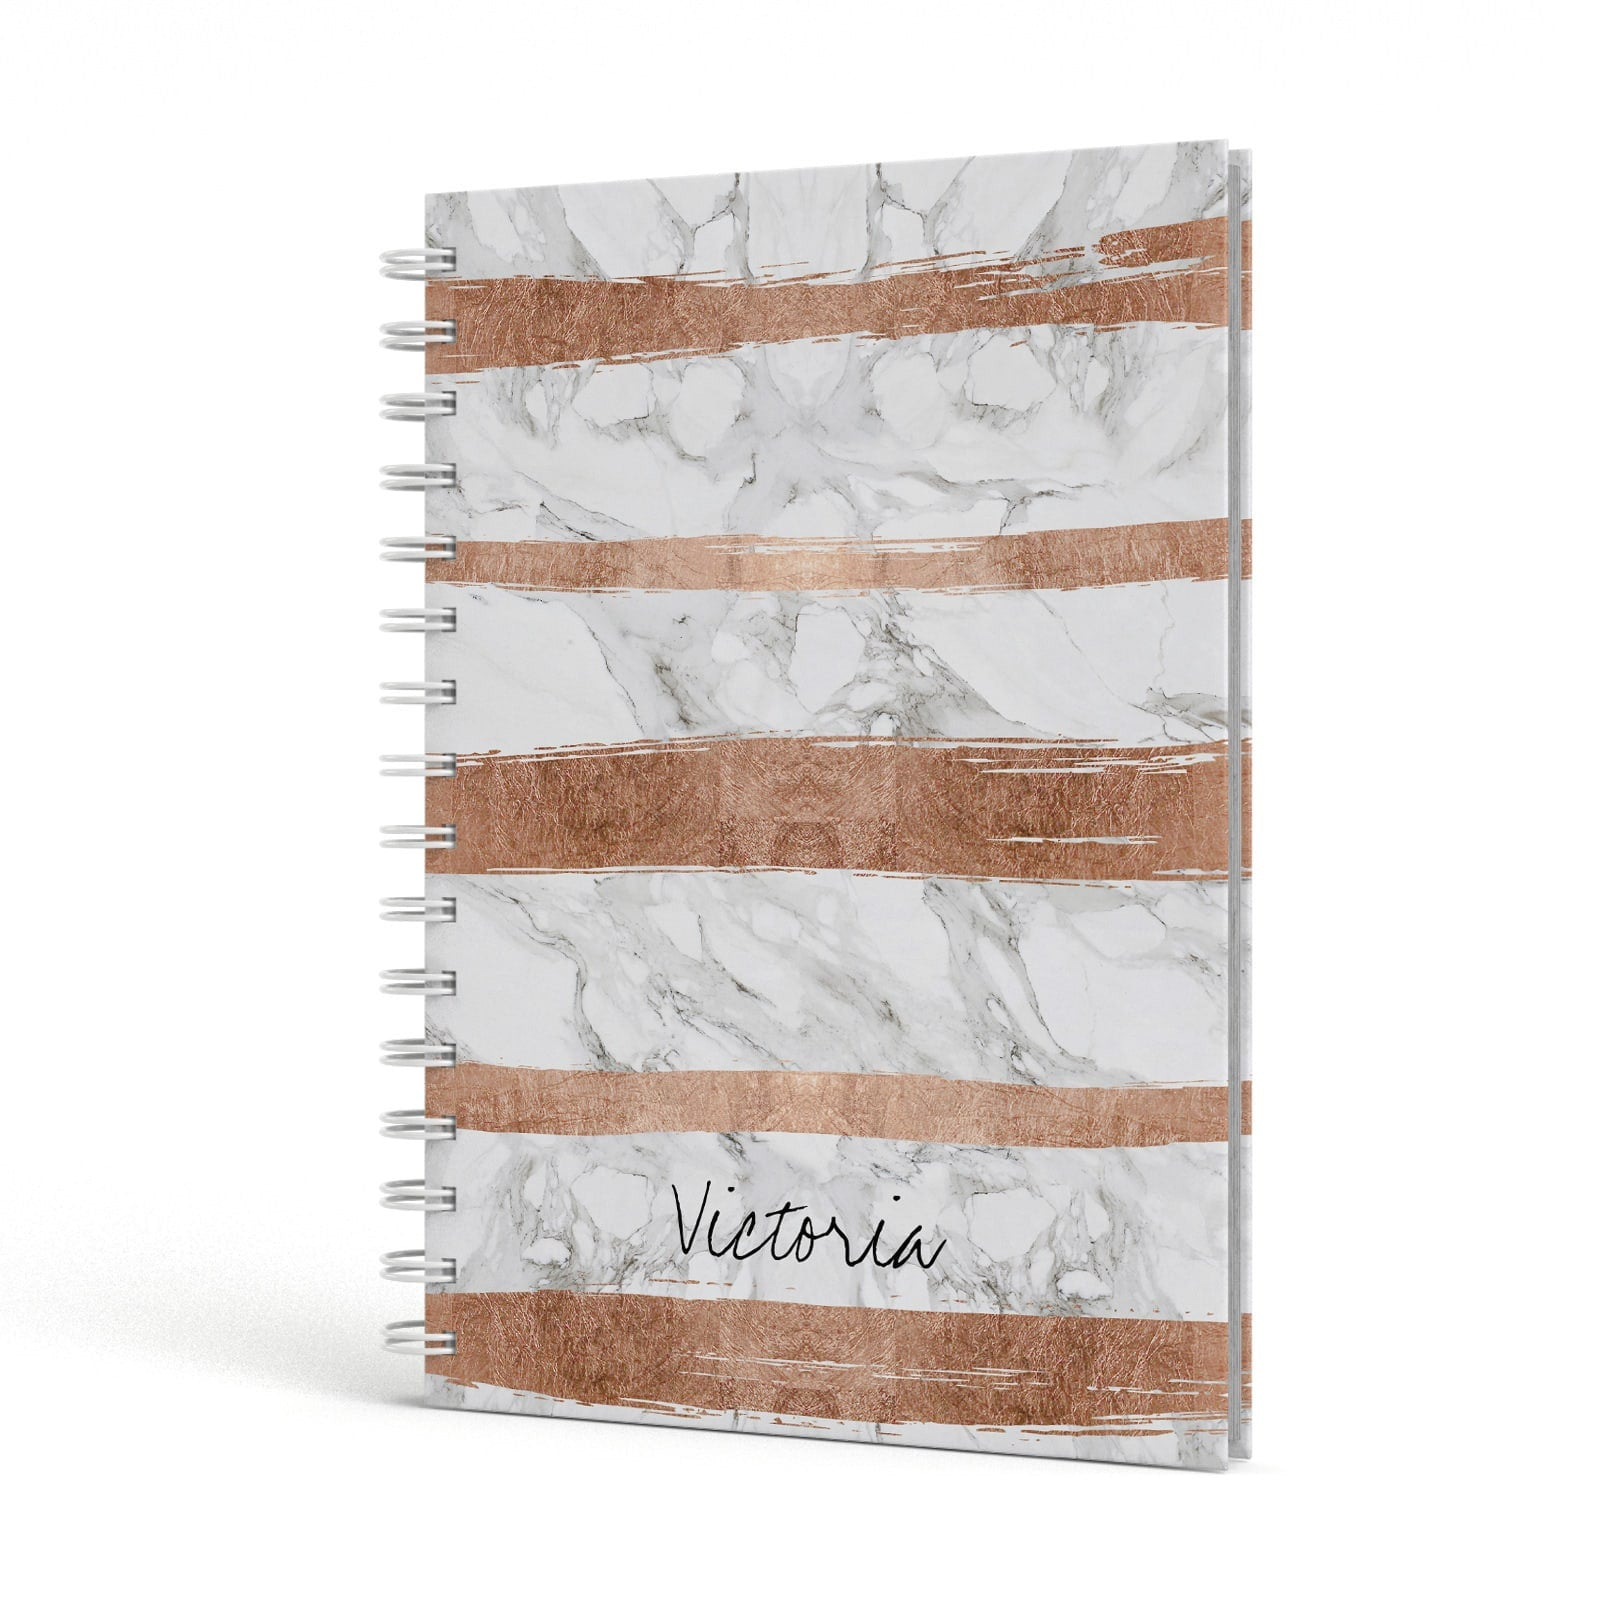 Personalised Rose Gold Brush Marble Initial A5 Hardcover Notebook Side View